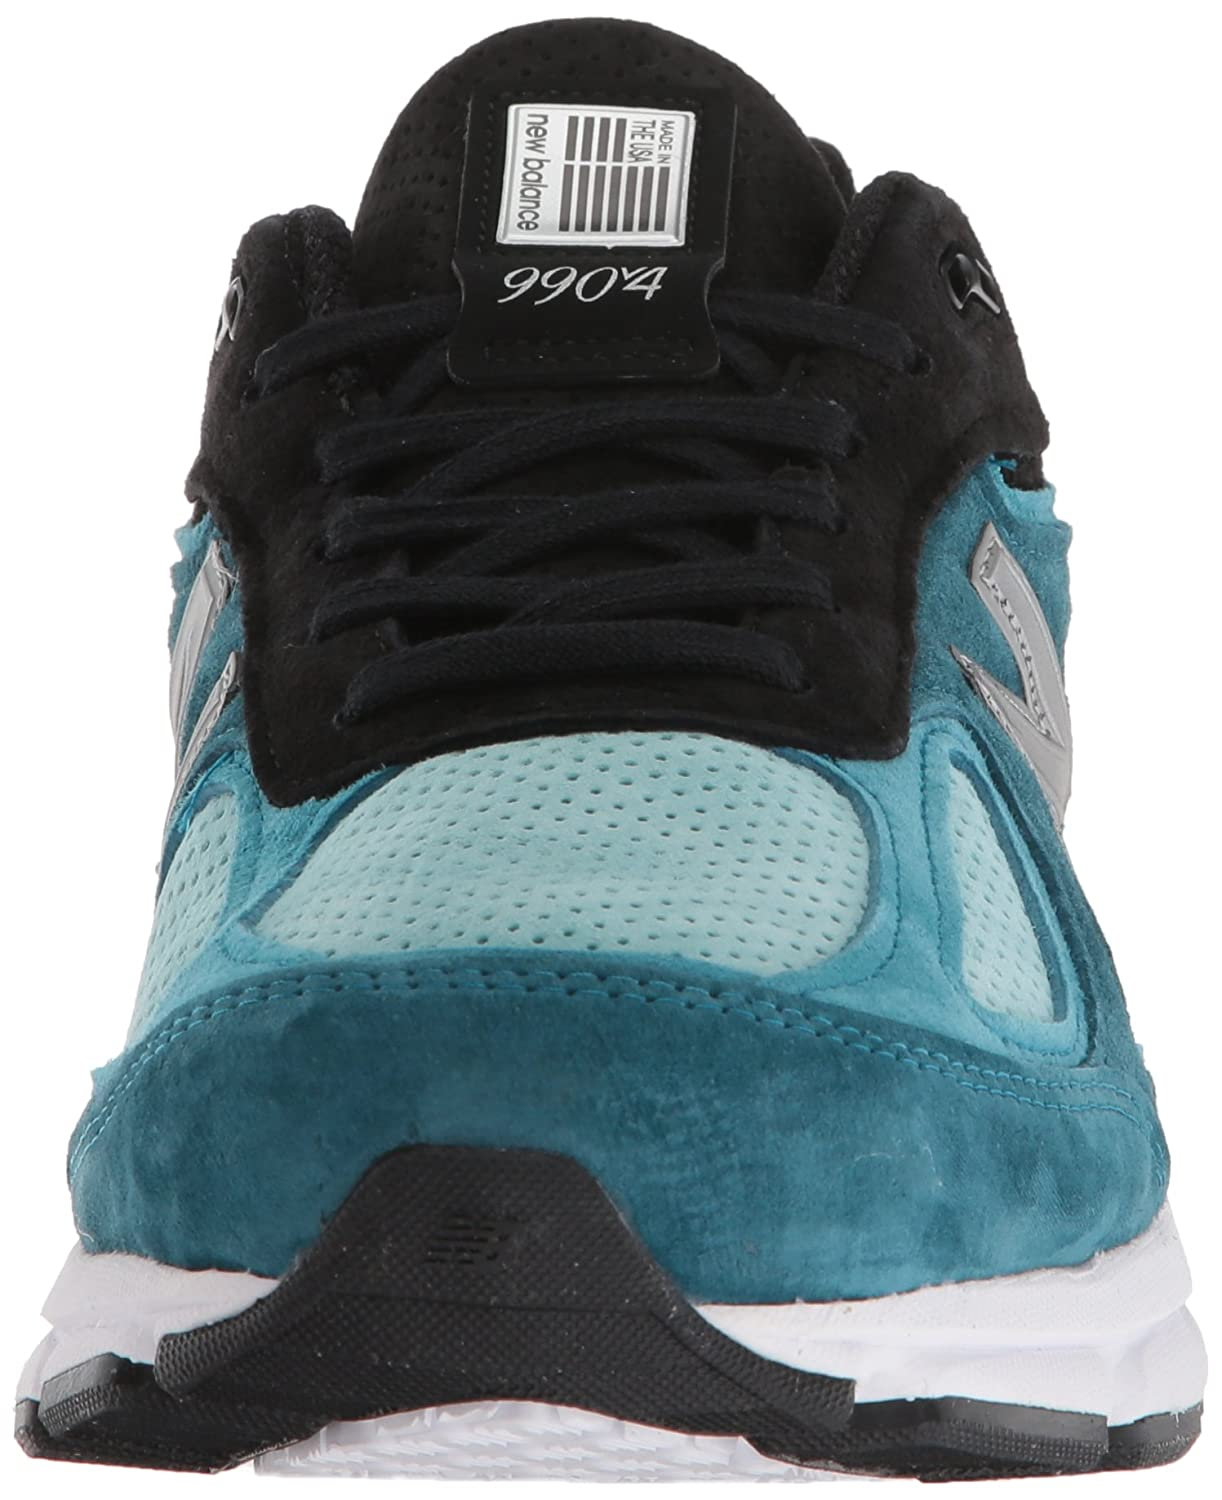 New-Balance-990-990v4-Classicc-Retro-Fashion-Sneaker-Made-in-USA thumbnail 32